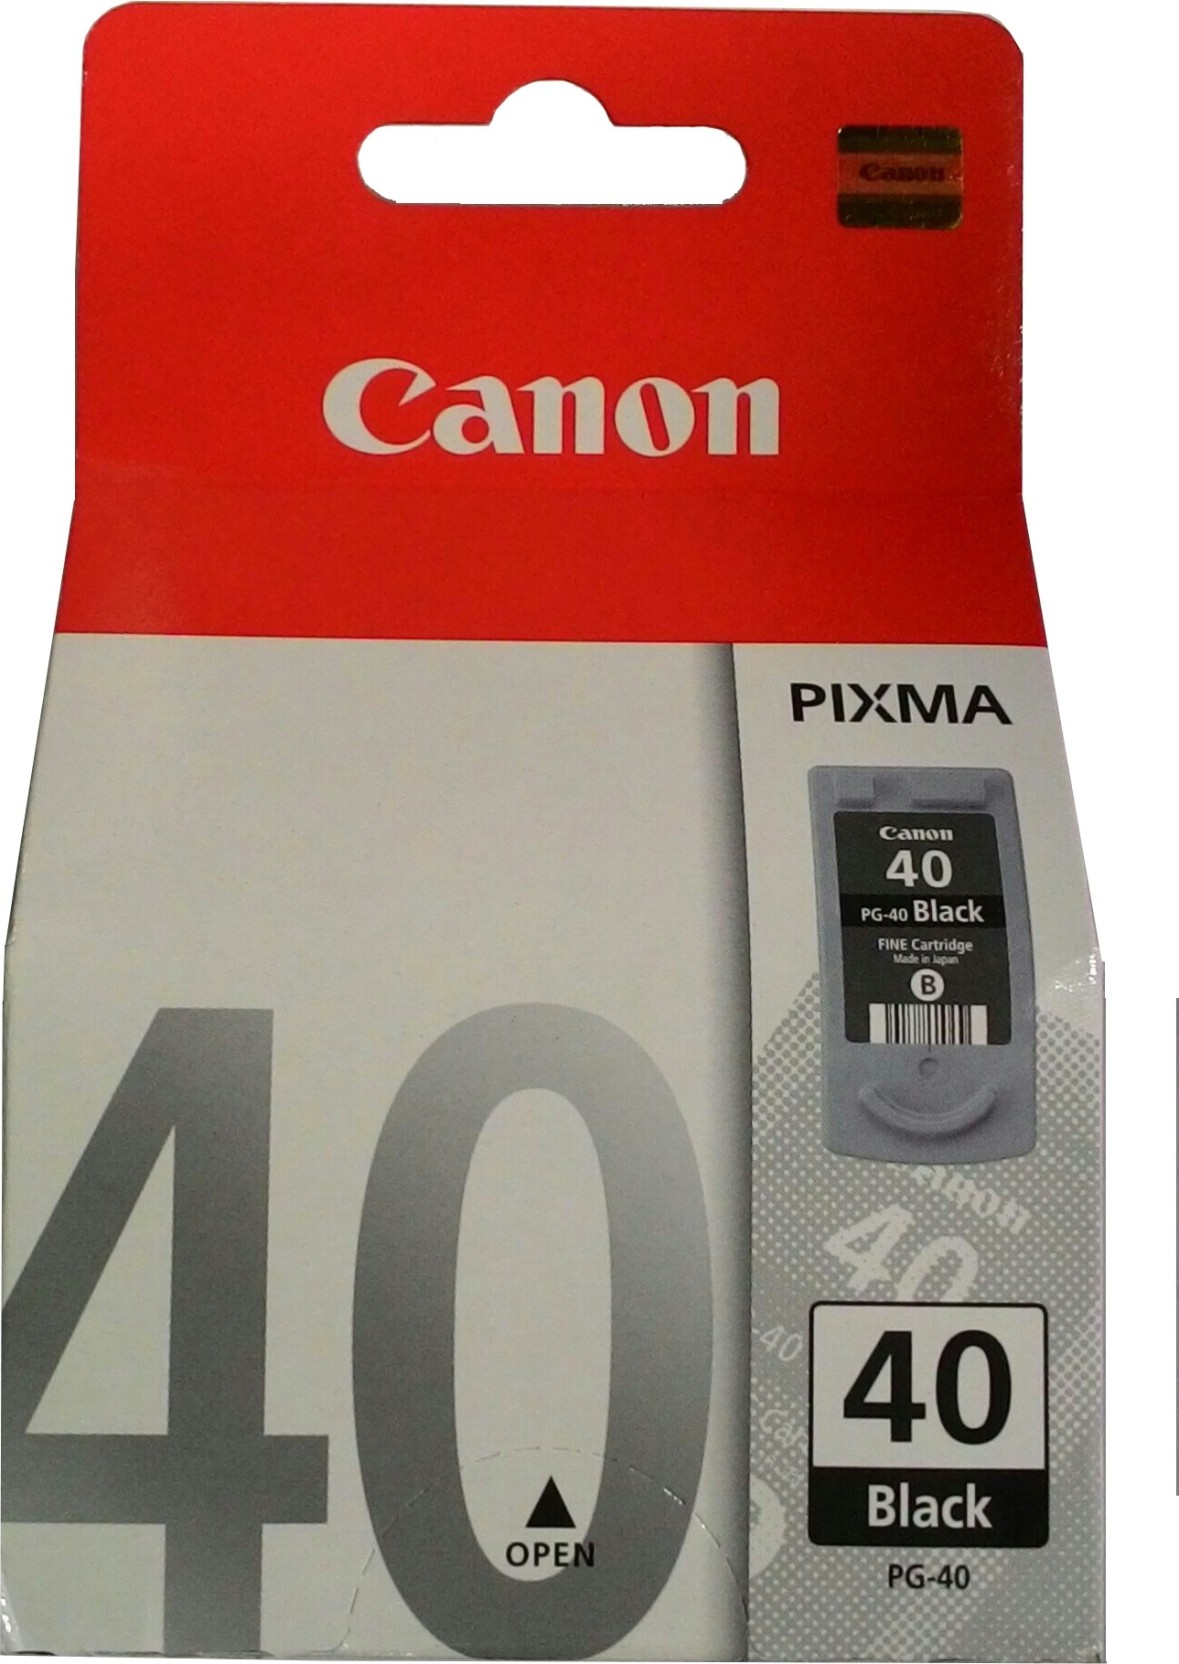 canon pg 40 ink cartridge canon. Black Bedroom Furniture Sets. Home Design Ideas